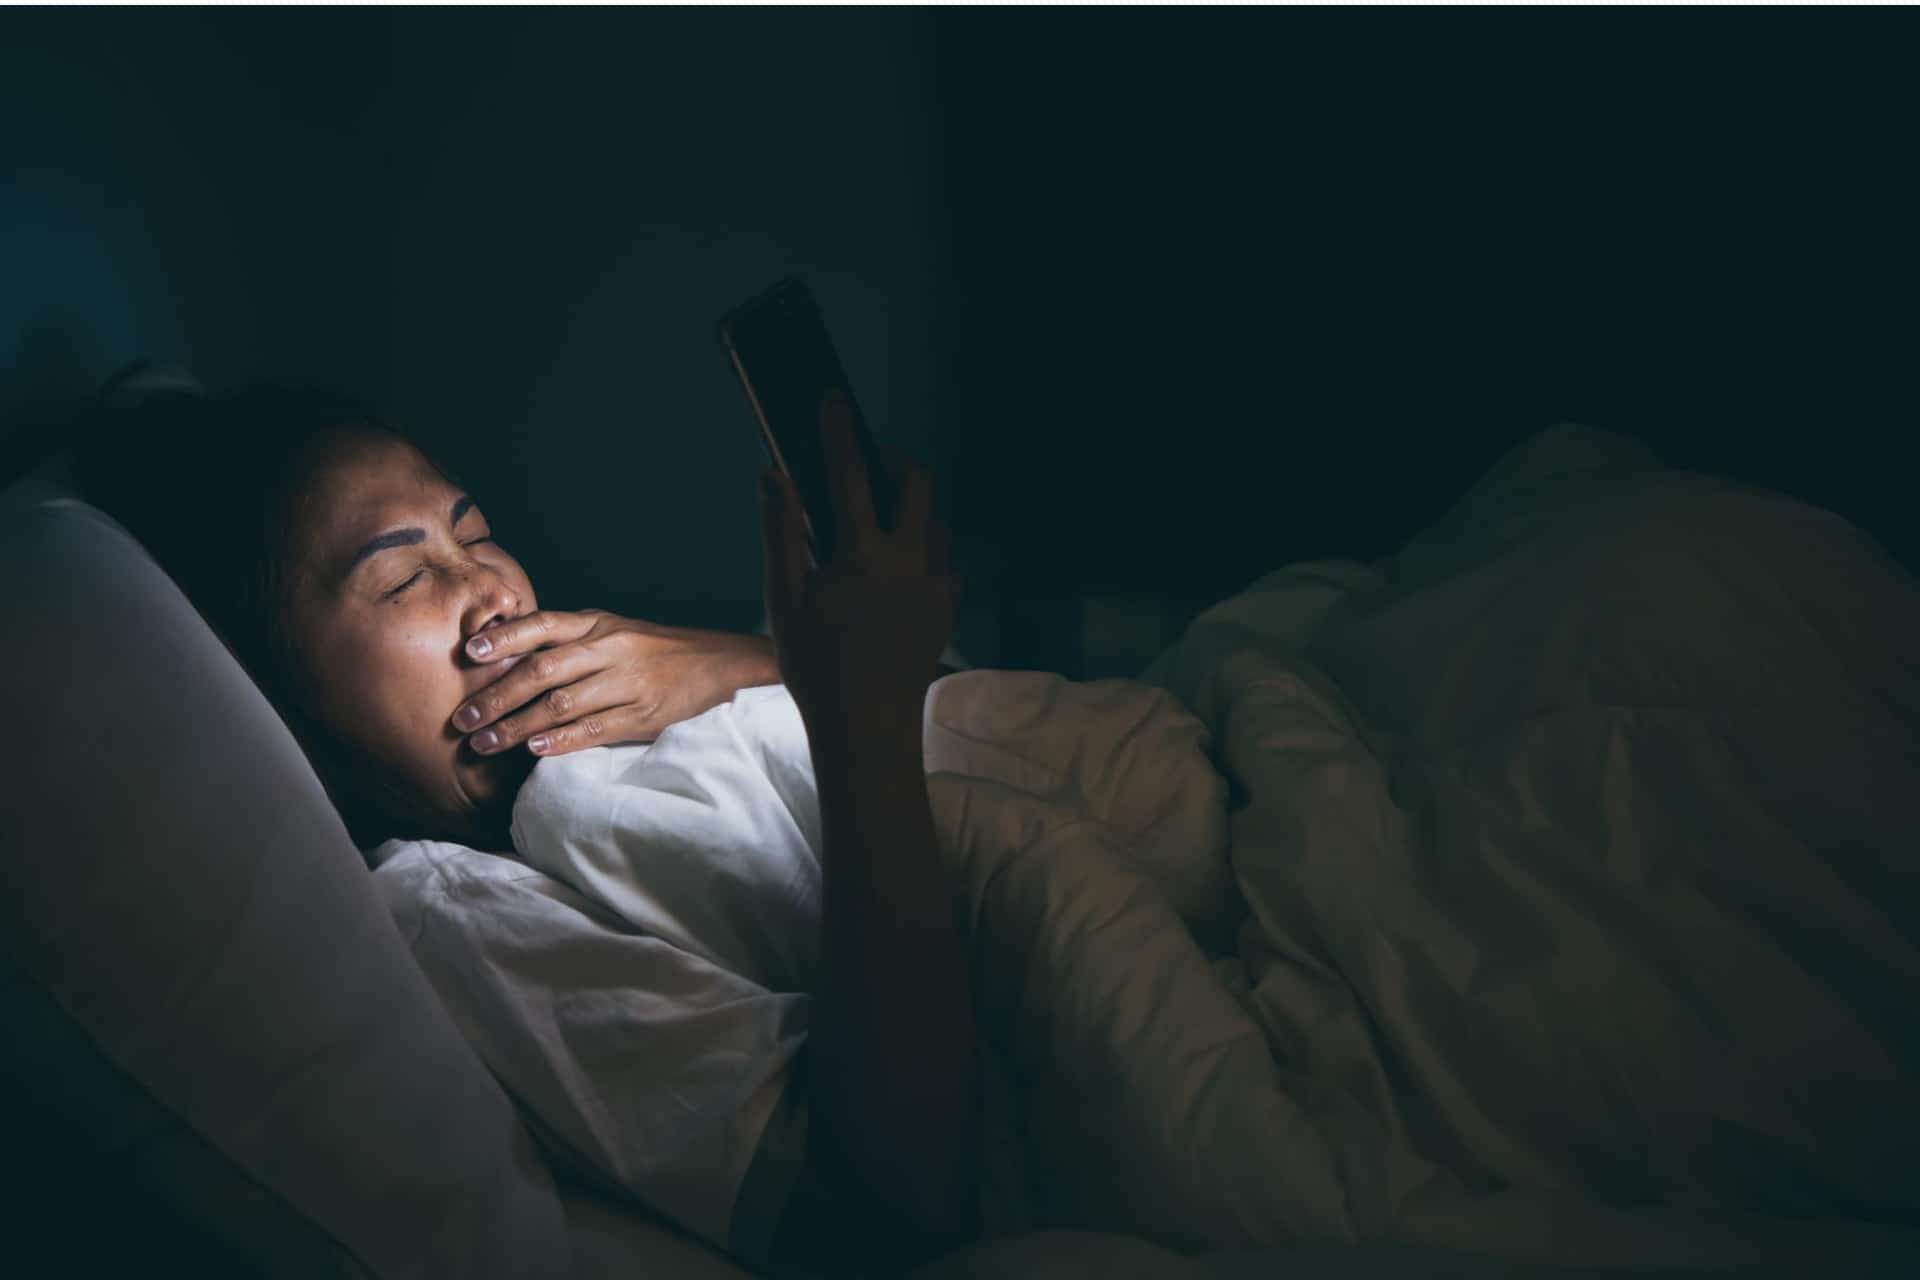 A woman yawns while looking at a mobile phone and trying to fall asleep.